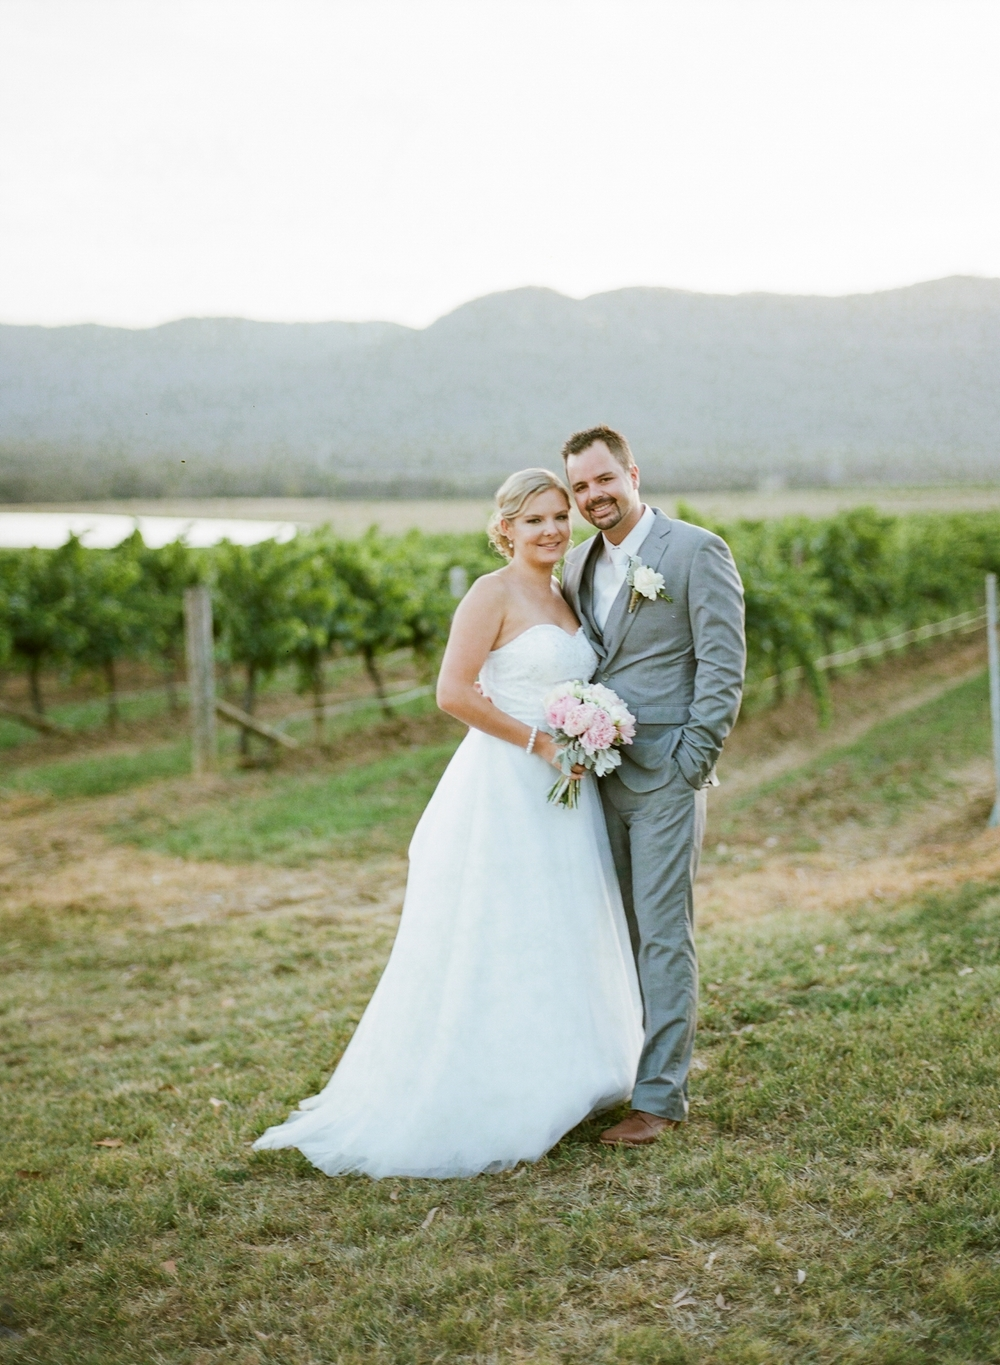 Hunter Valley wedding by Mr Edwards Photography_0737_1079.jpg